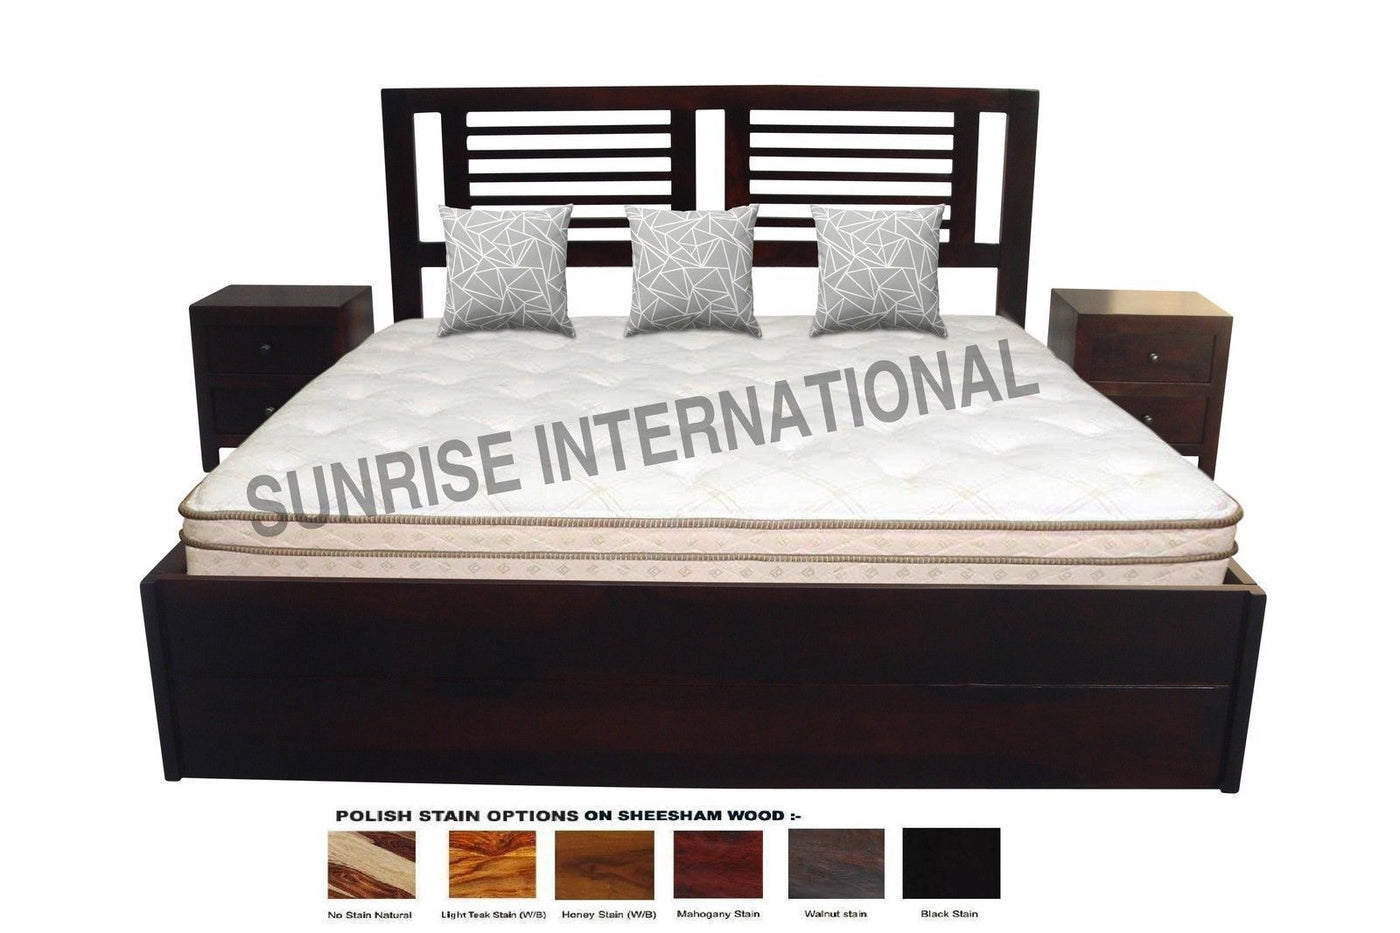 Picture of: Solid Wood Bed Wooden Bed Sheesham Wood Storage Bed Online In India Furniture Online Buy Wooden Furniture For Every Home Sunrise International